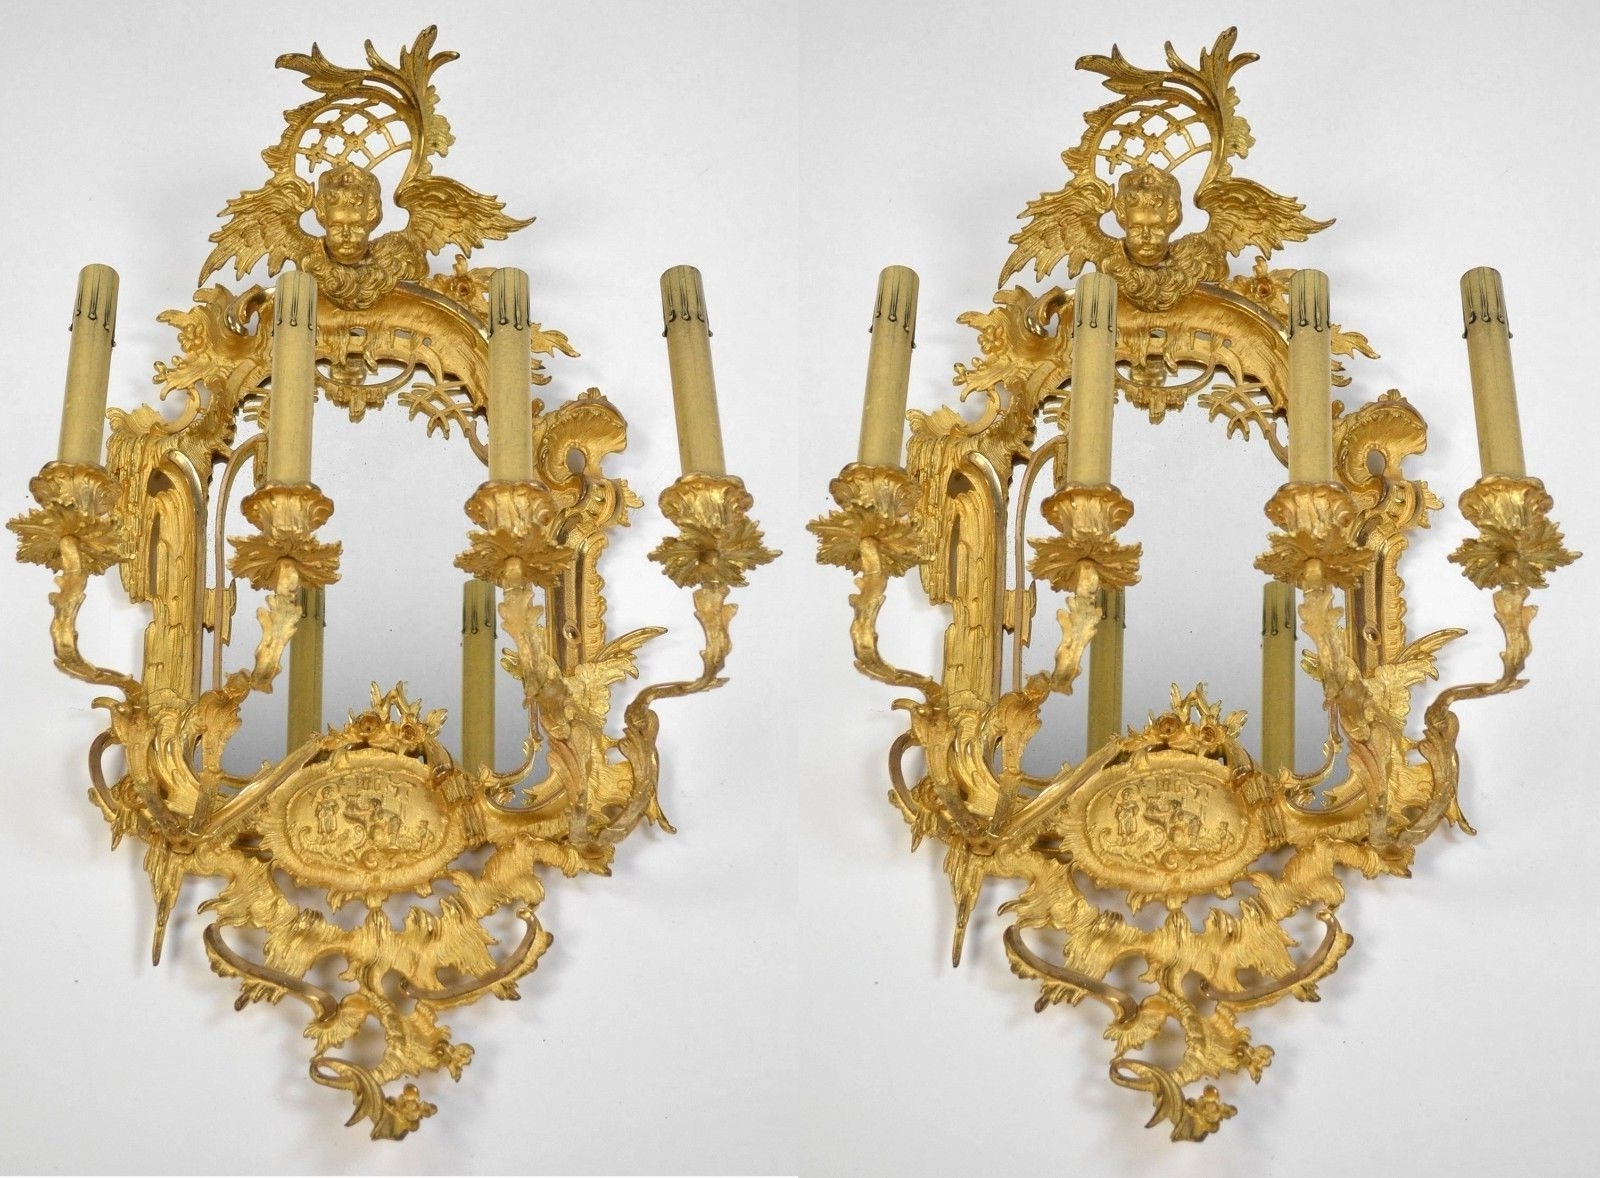 Trendy Large Pair French Rococo Mirrored Sconces C1880 Ornate Antique Wall Inside Ornate Chandeliers (View 16 of 20)